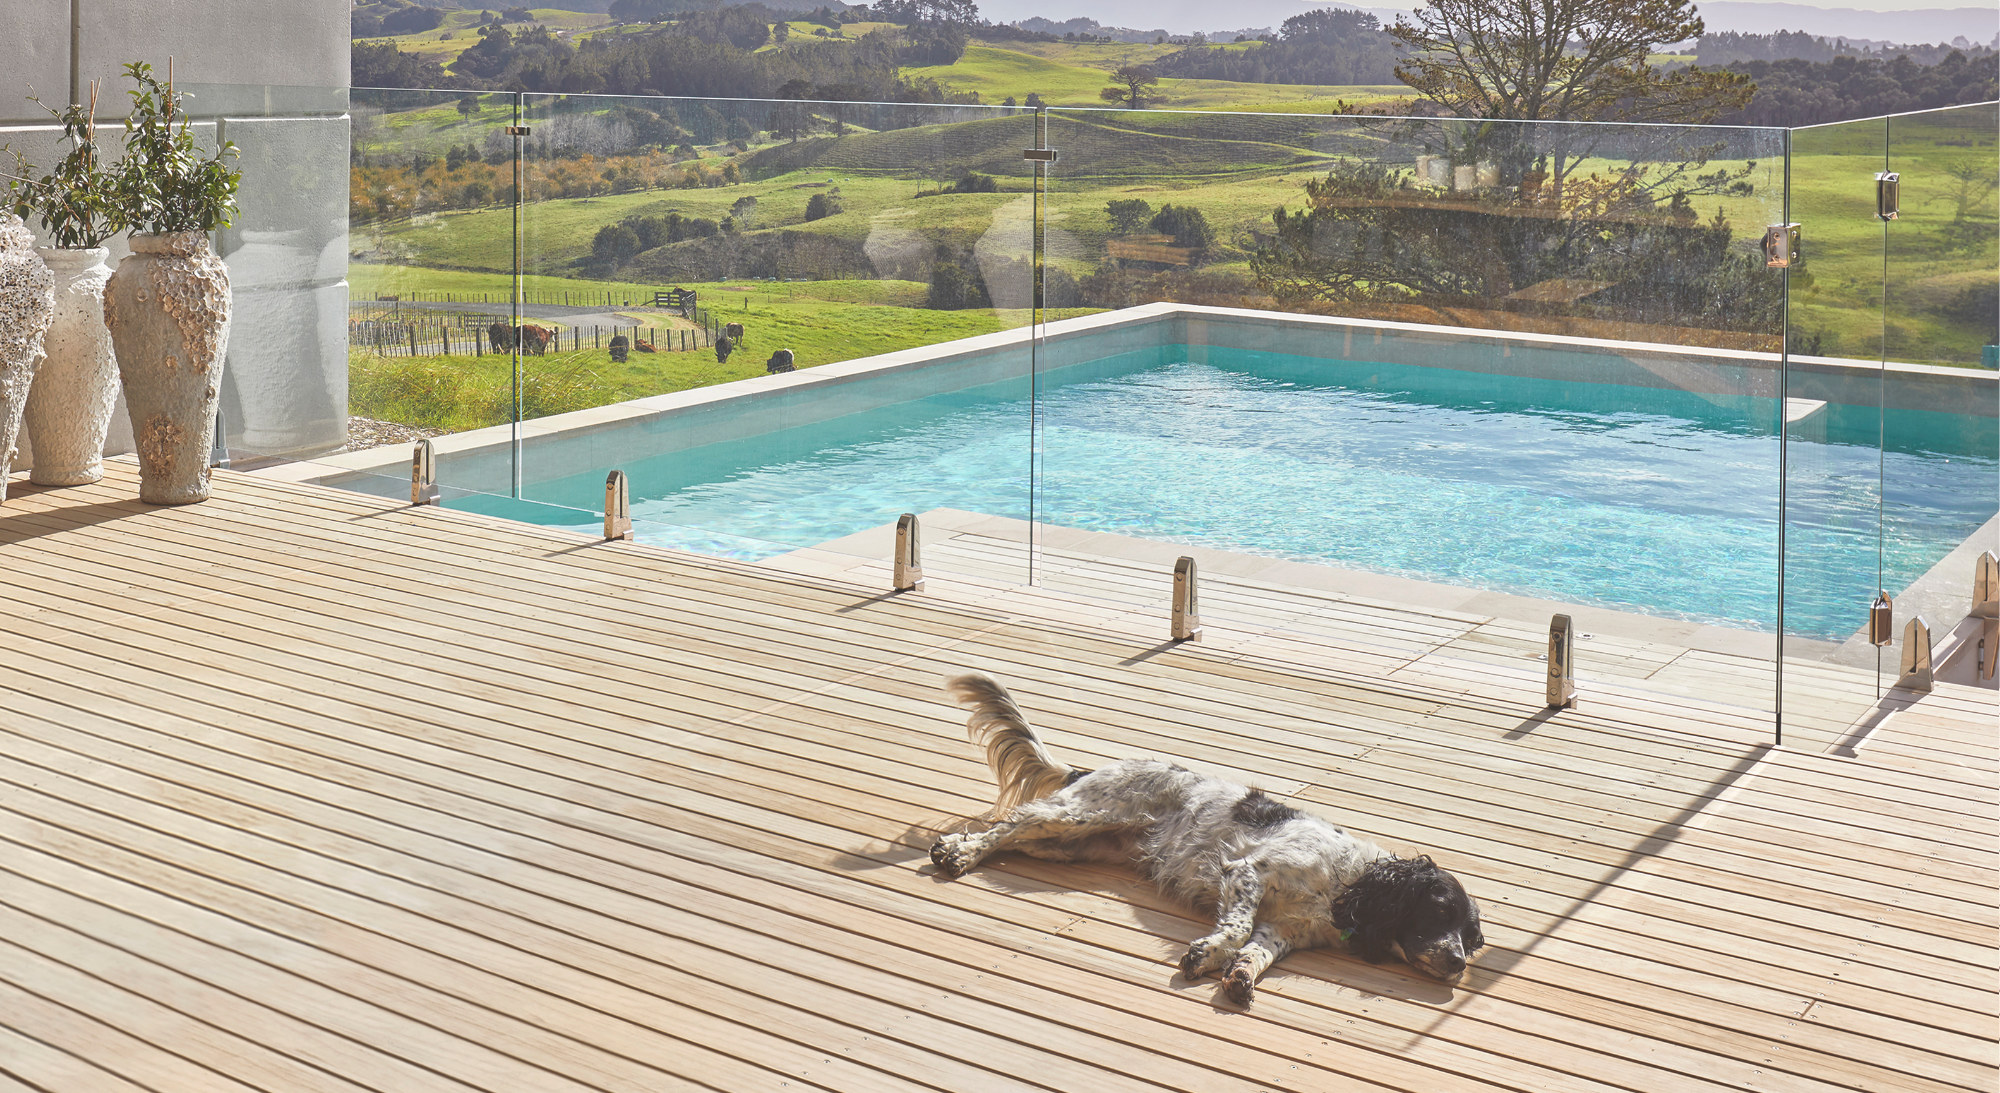 a dog lies on the deck by a pool in front of the rolling hills of the farm estate